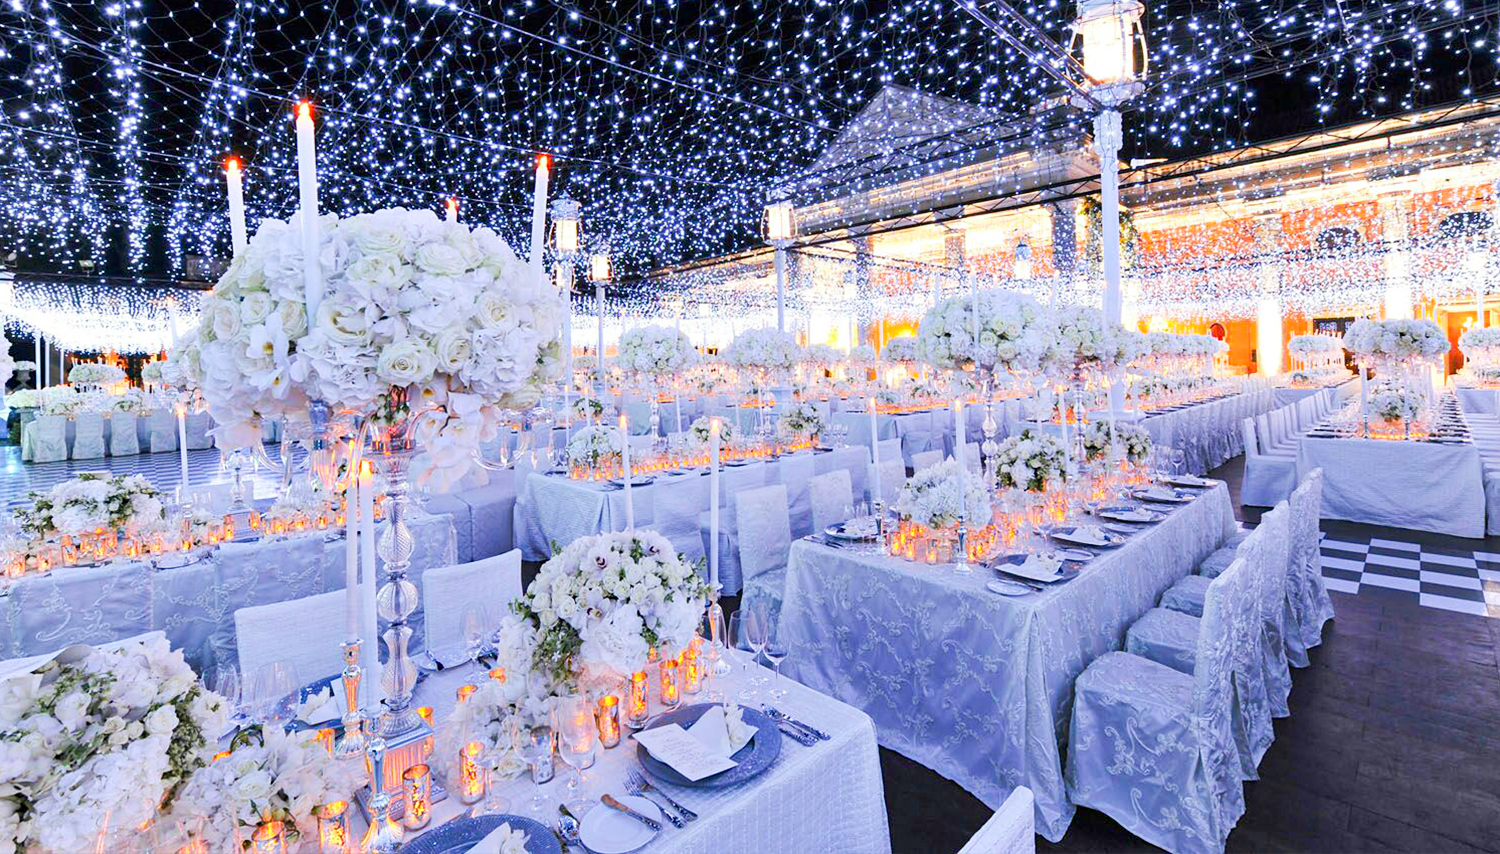 Fabulous Ideas for a Wedding Reception in Winter - Happy Wedding App